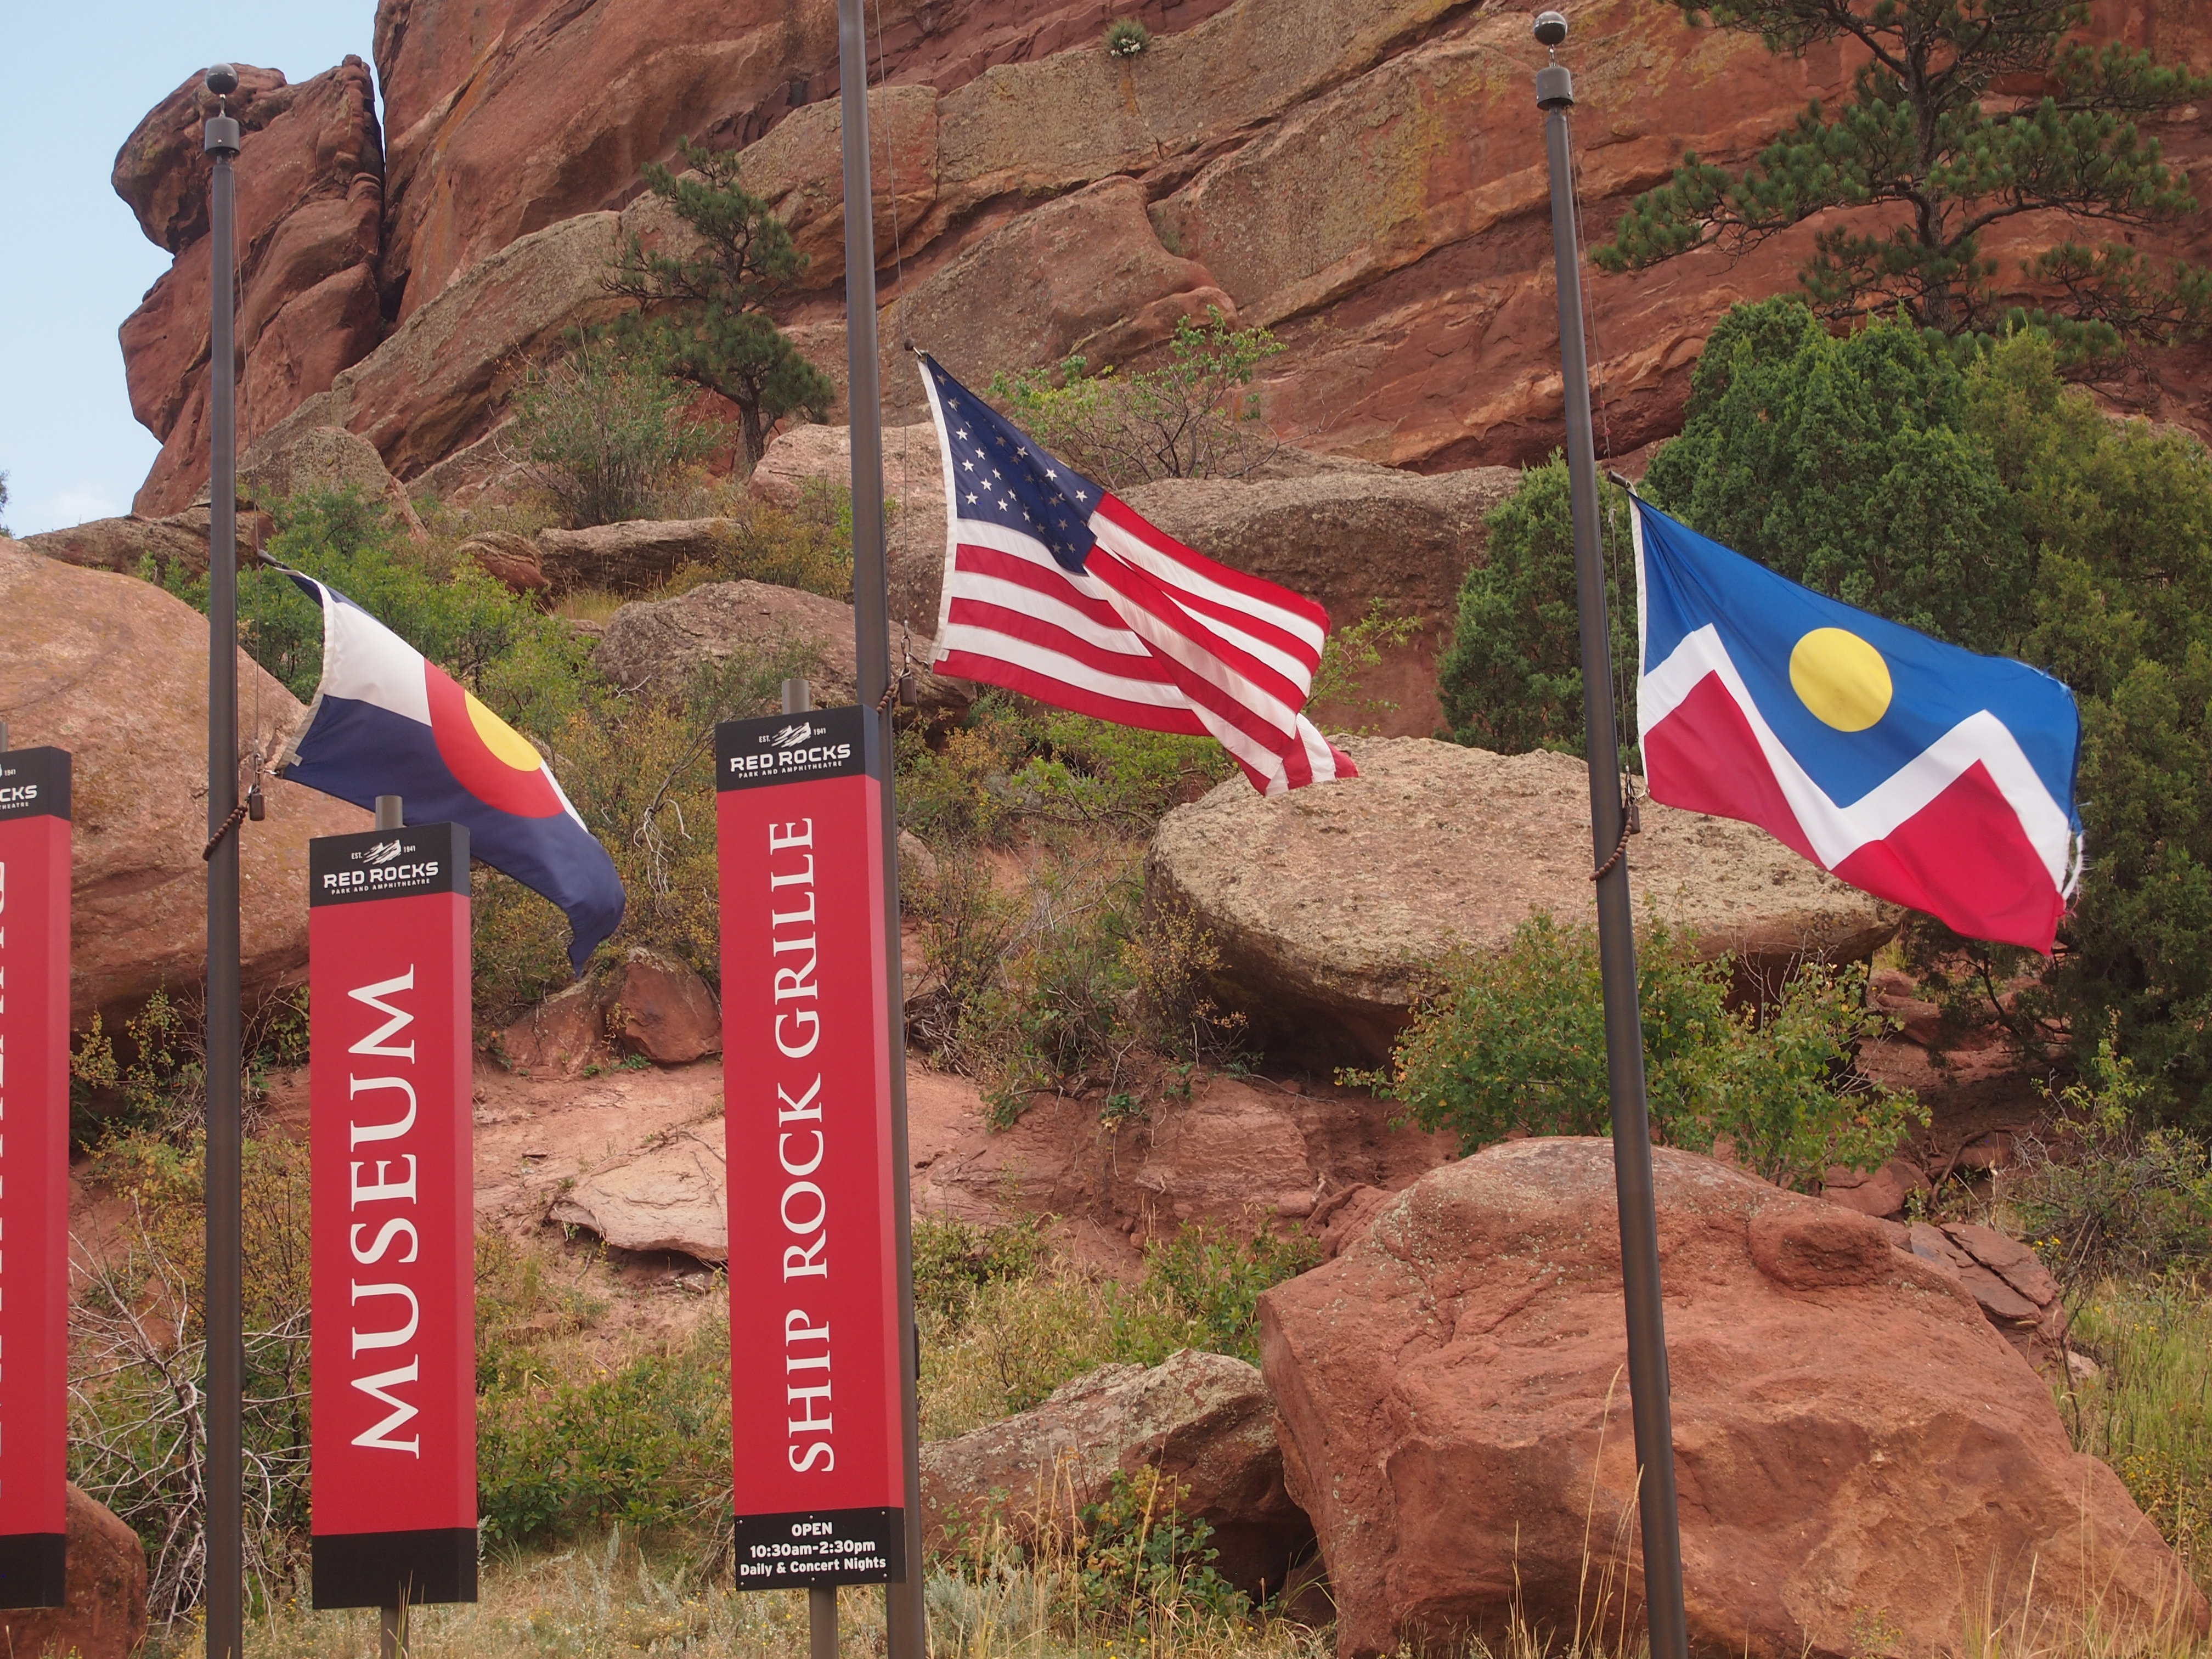 Flags: Colorado, US, Denver